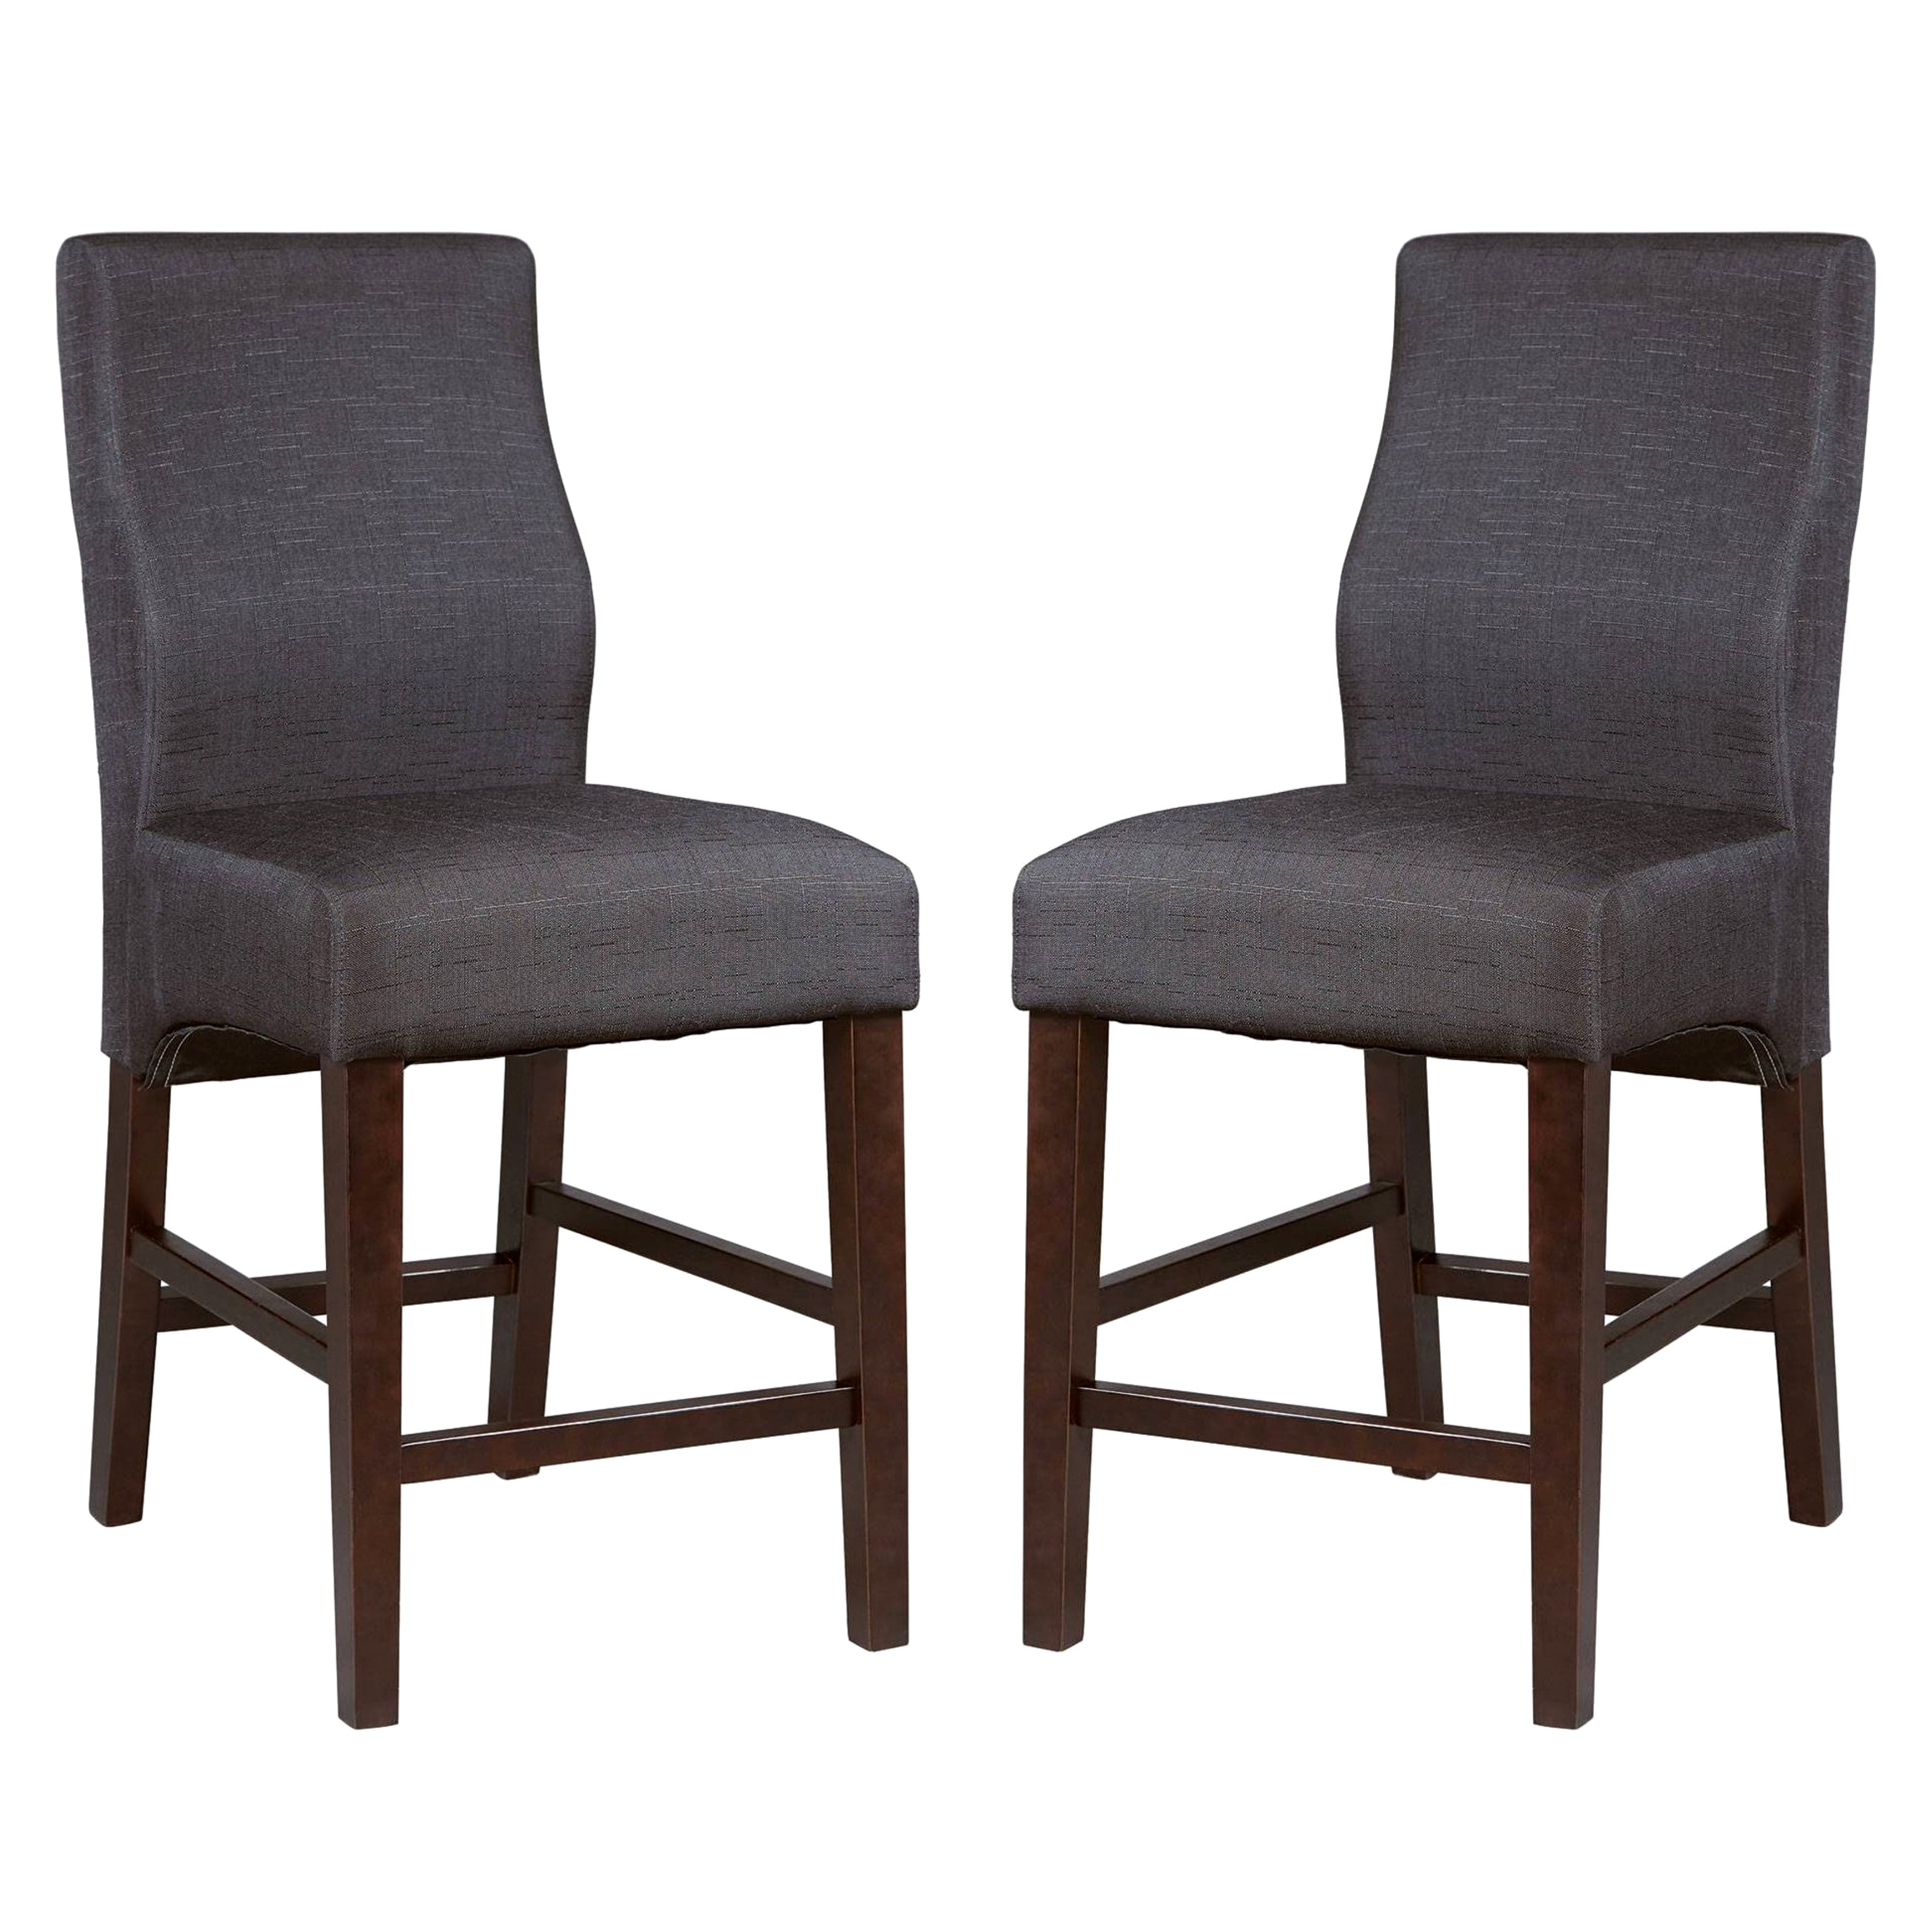 A Line Furniture Luxenberg Casual Black Parson Counter Height Stools (Set of 2)